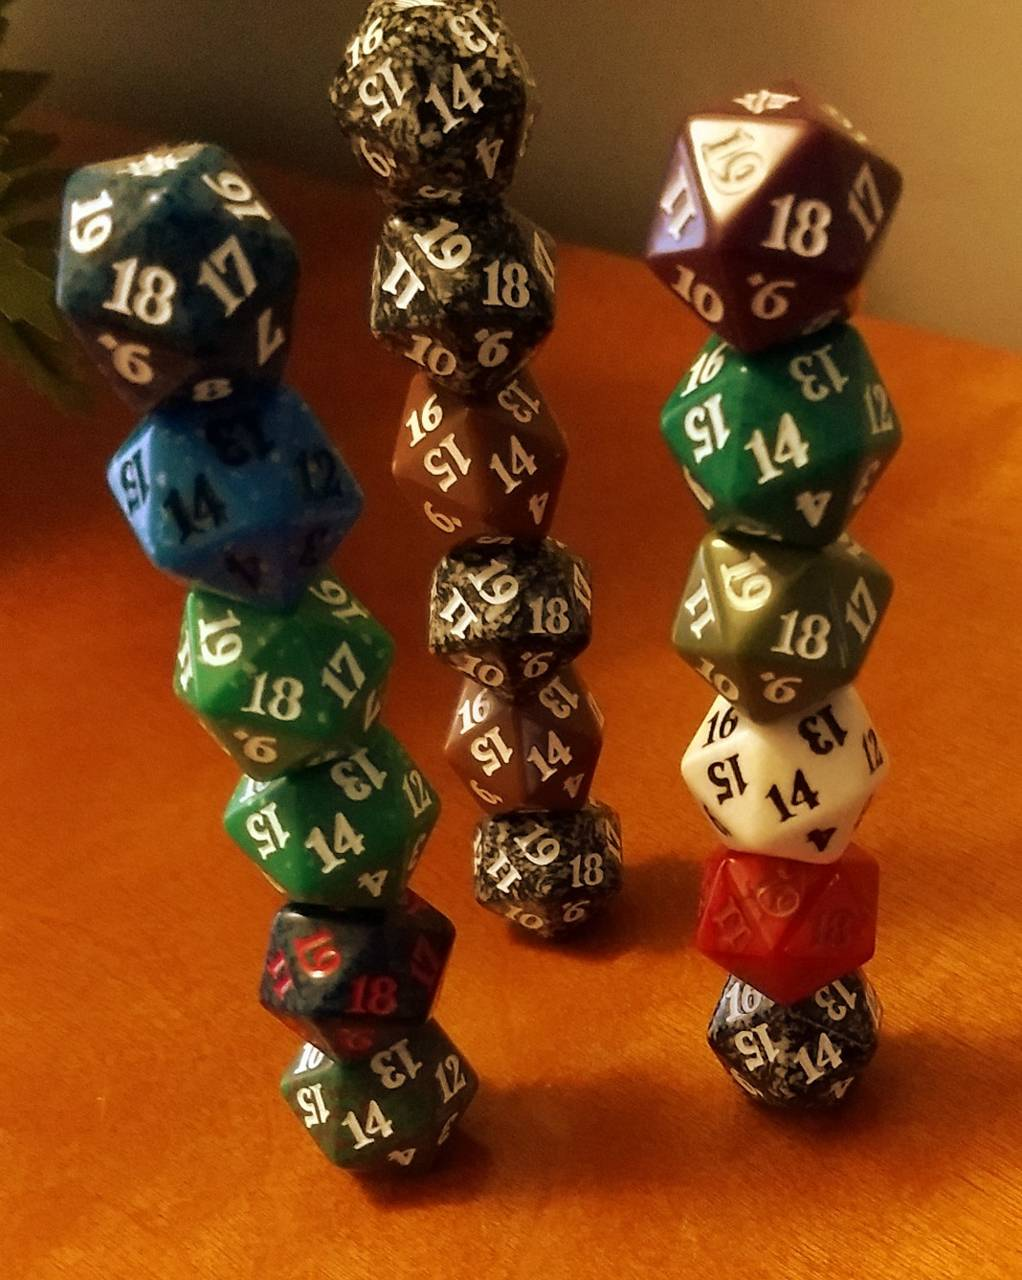 Triangle of dice